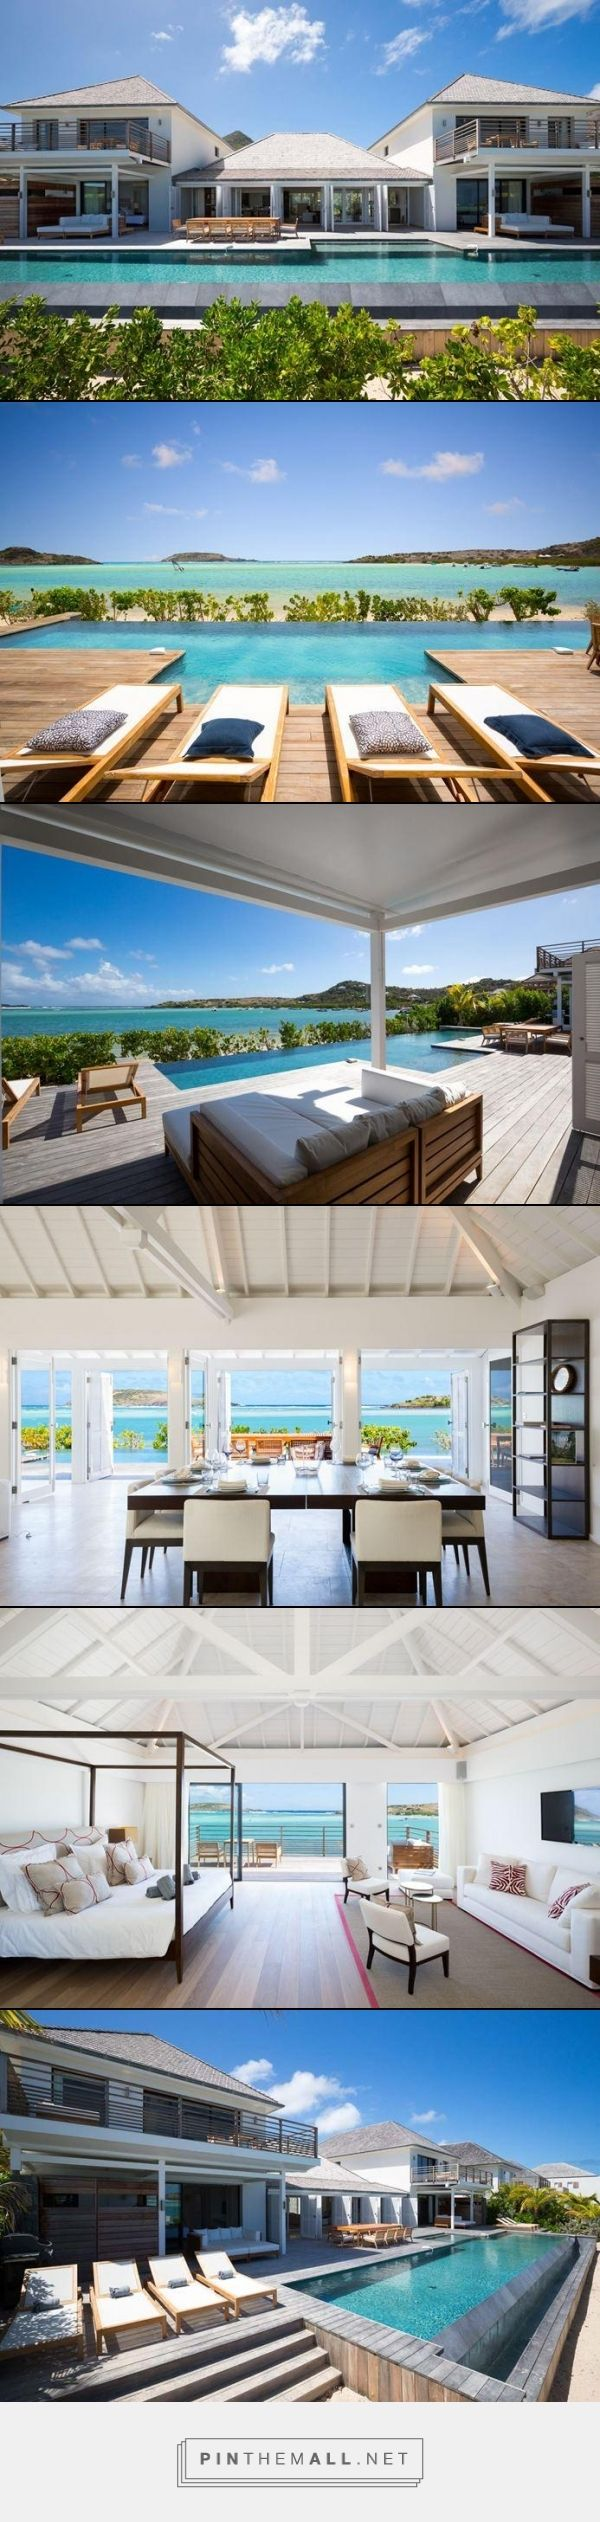 203 best St. Barths Villas images on Pinterest | Mansions, Villa and Carribean Luxury Home Designs S E A on